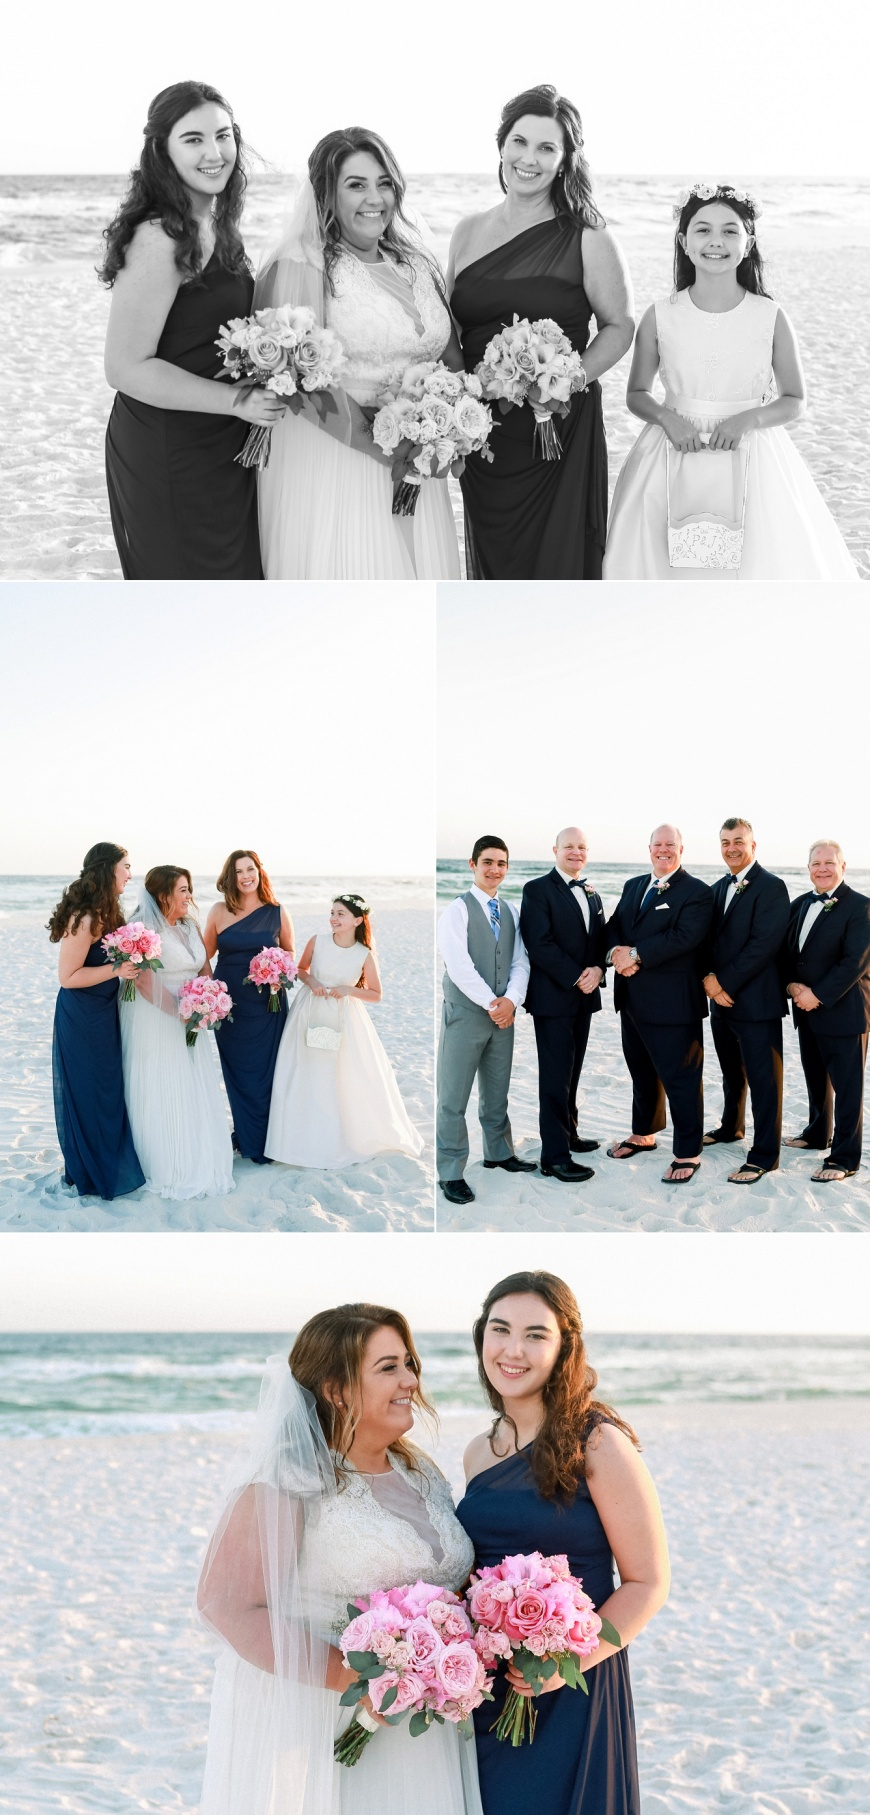 Portofino-Island-Resort-Pensacola-Beach-Wedding-Photographer_1035.jpg